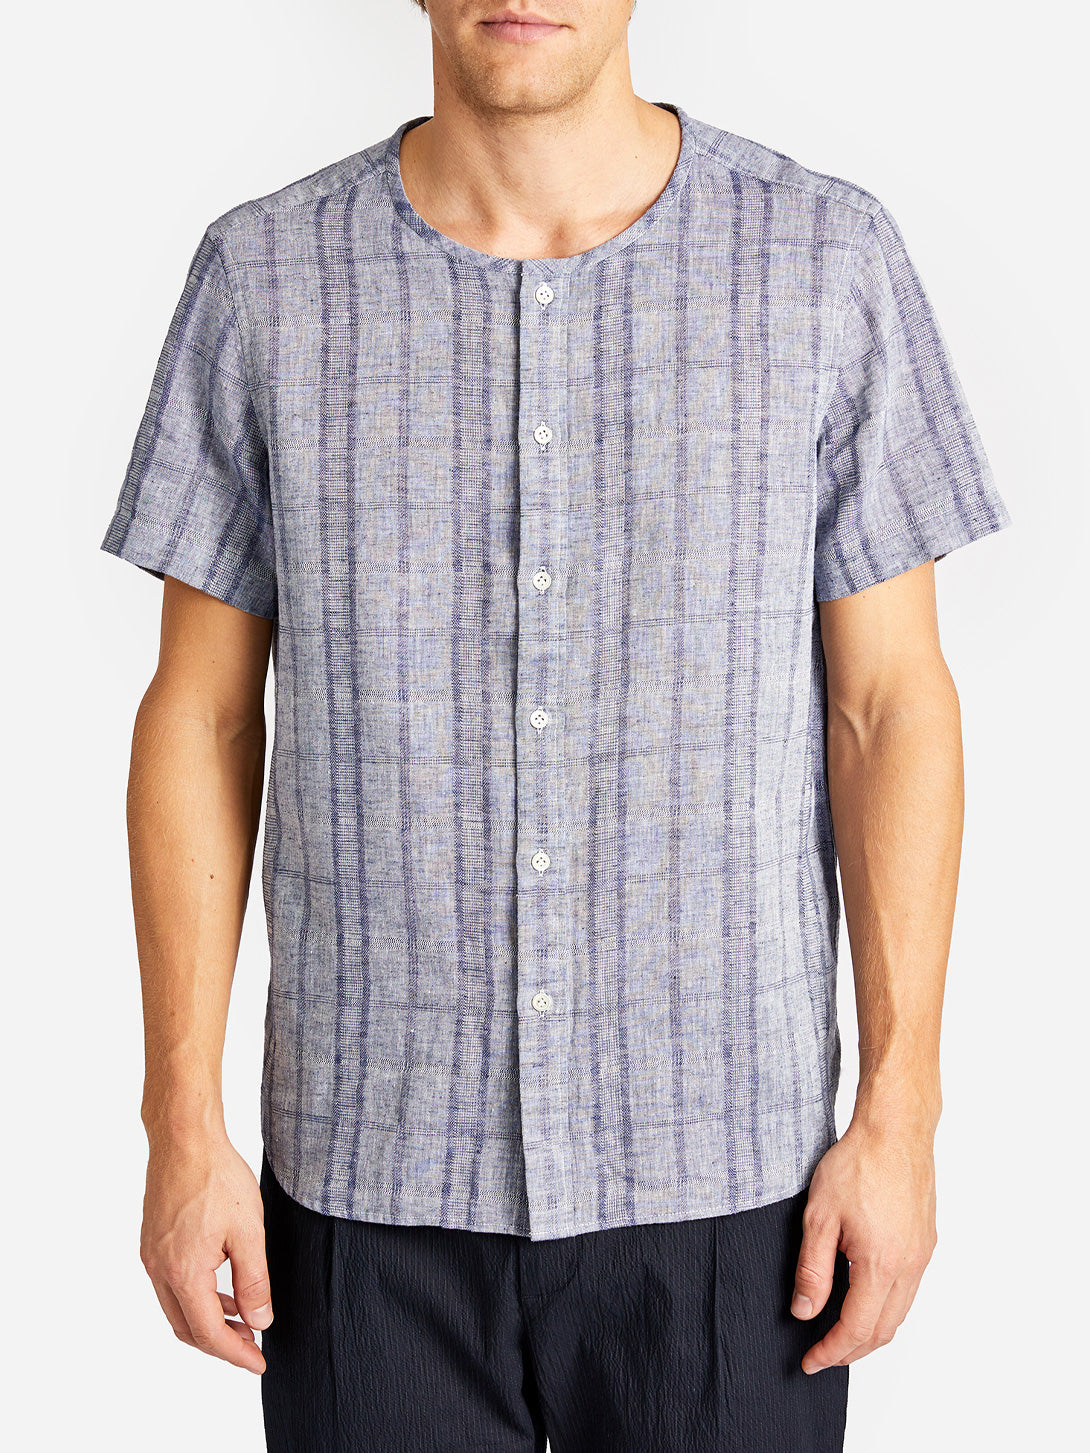 AVILA SHIRT NAVY CHECK GREY LABEL